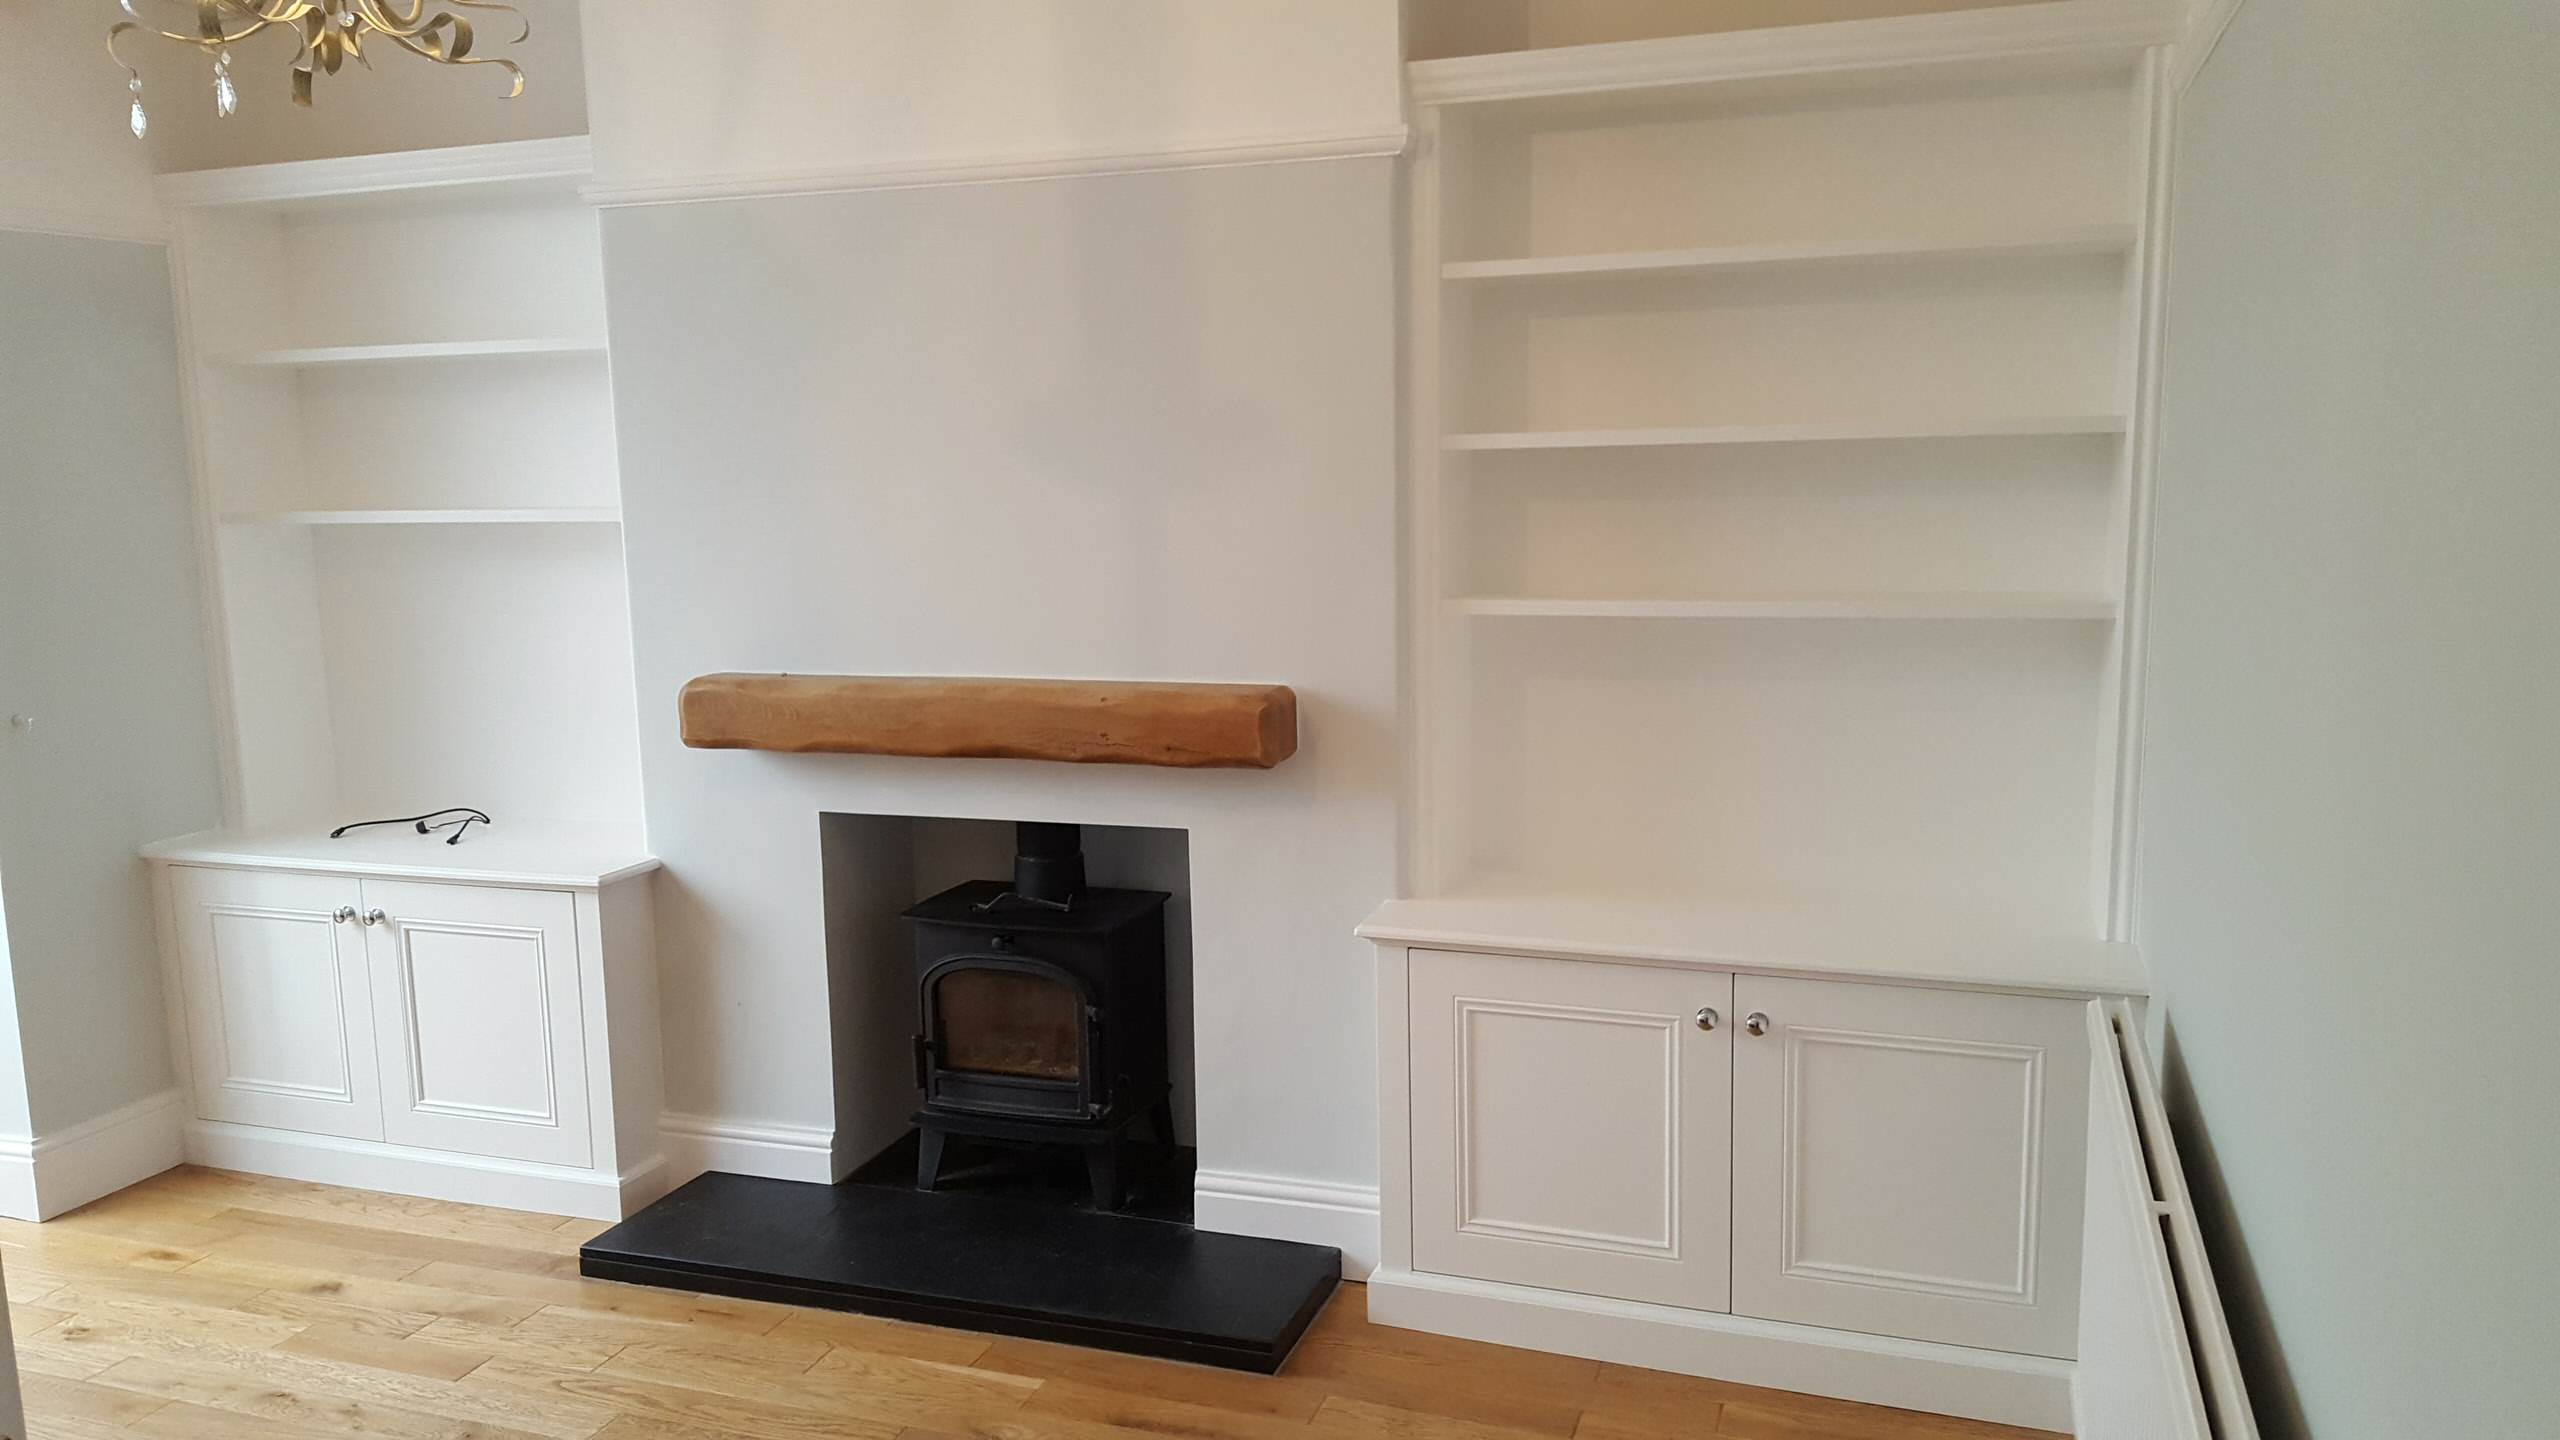 Classic Alcove Units in Off-White Either Side of a Wood Burning Stove